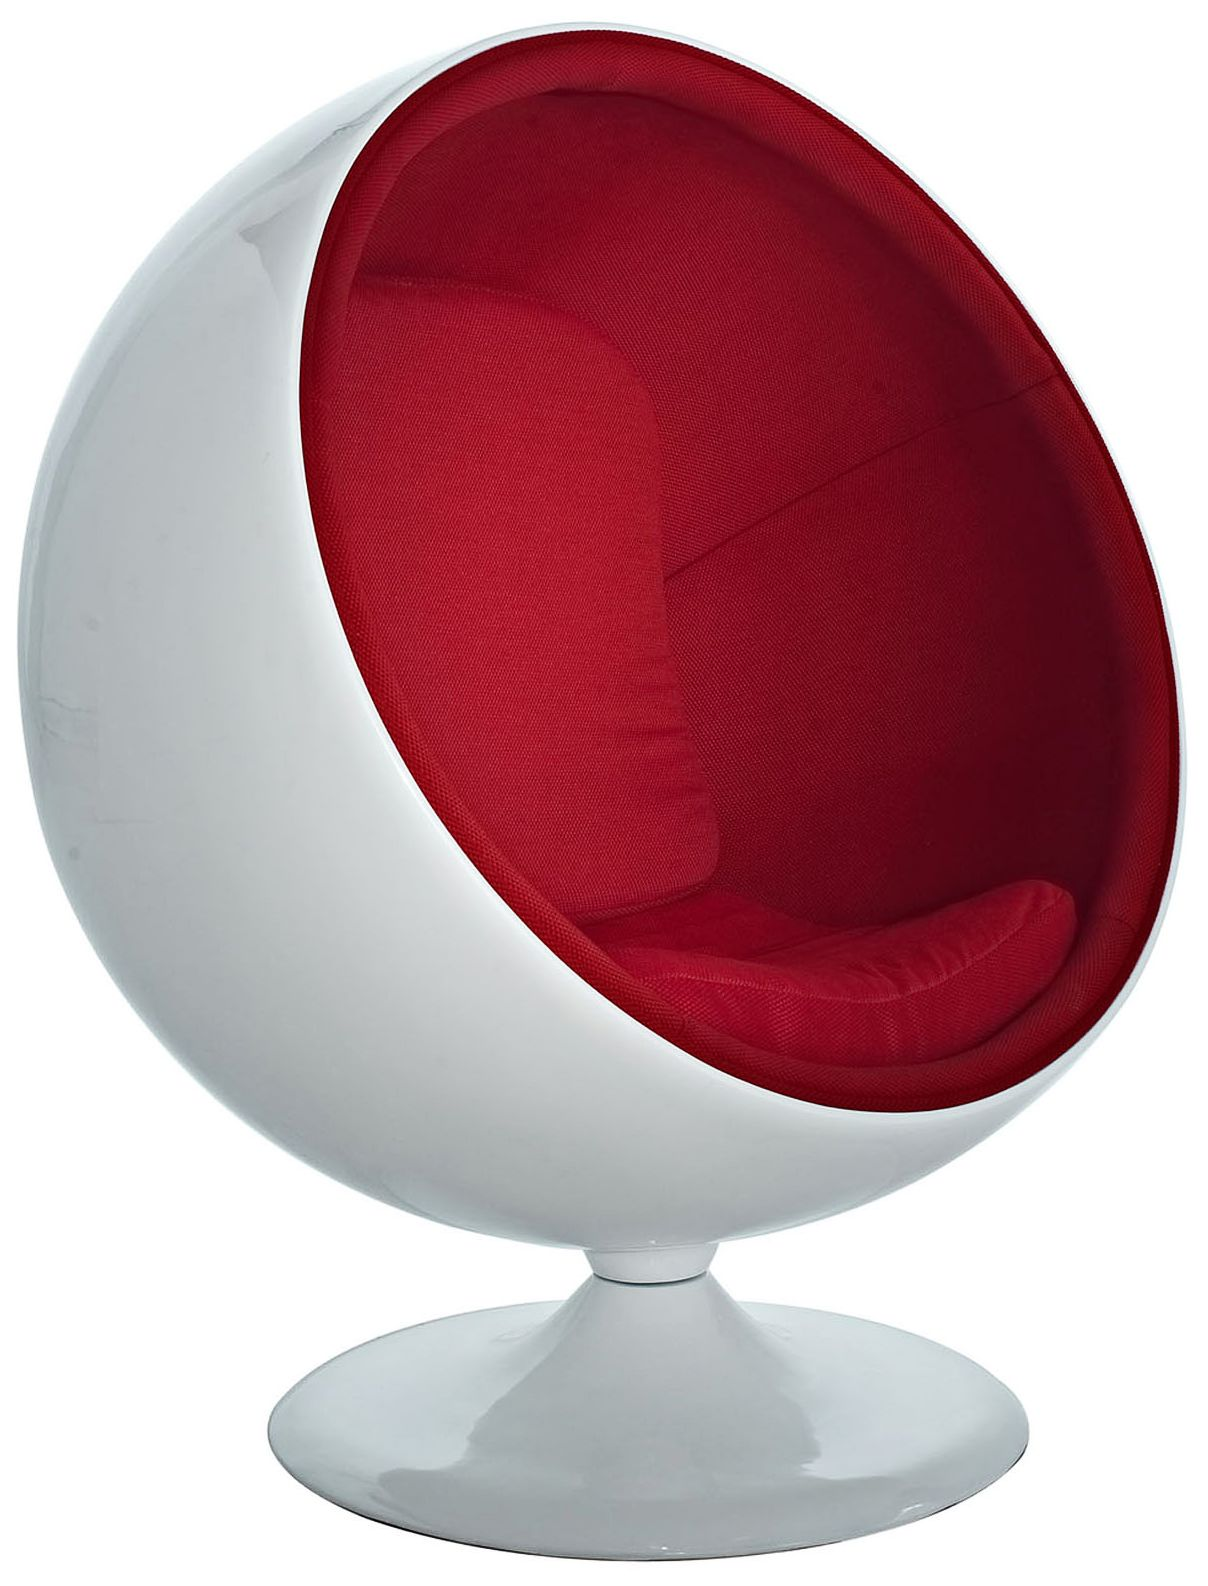 modern ball lounge chair armrest kaddur red fabric 7j847 lamps plus